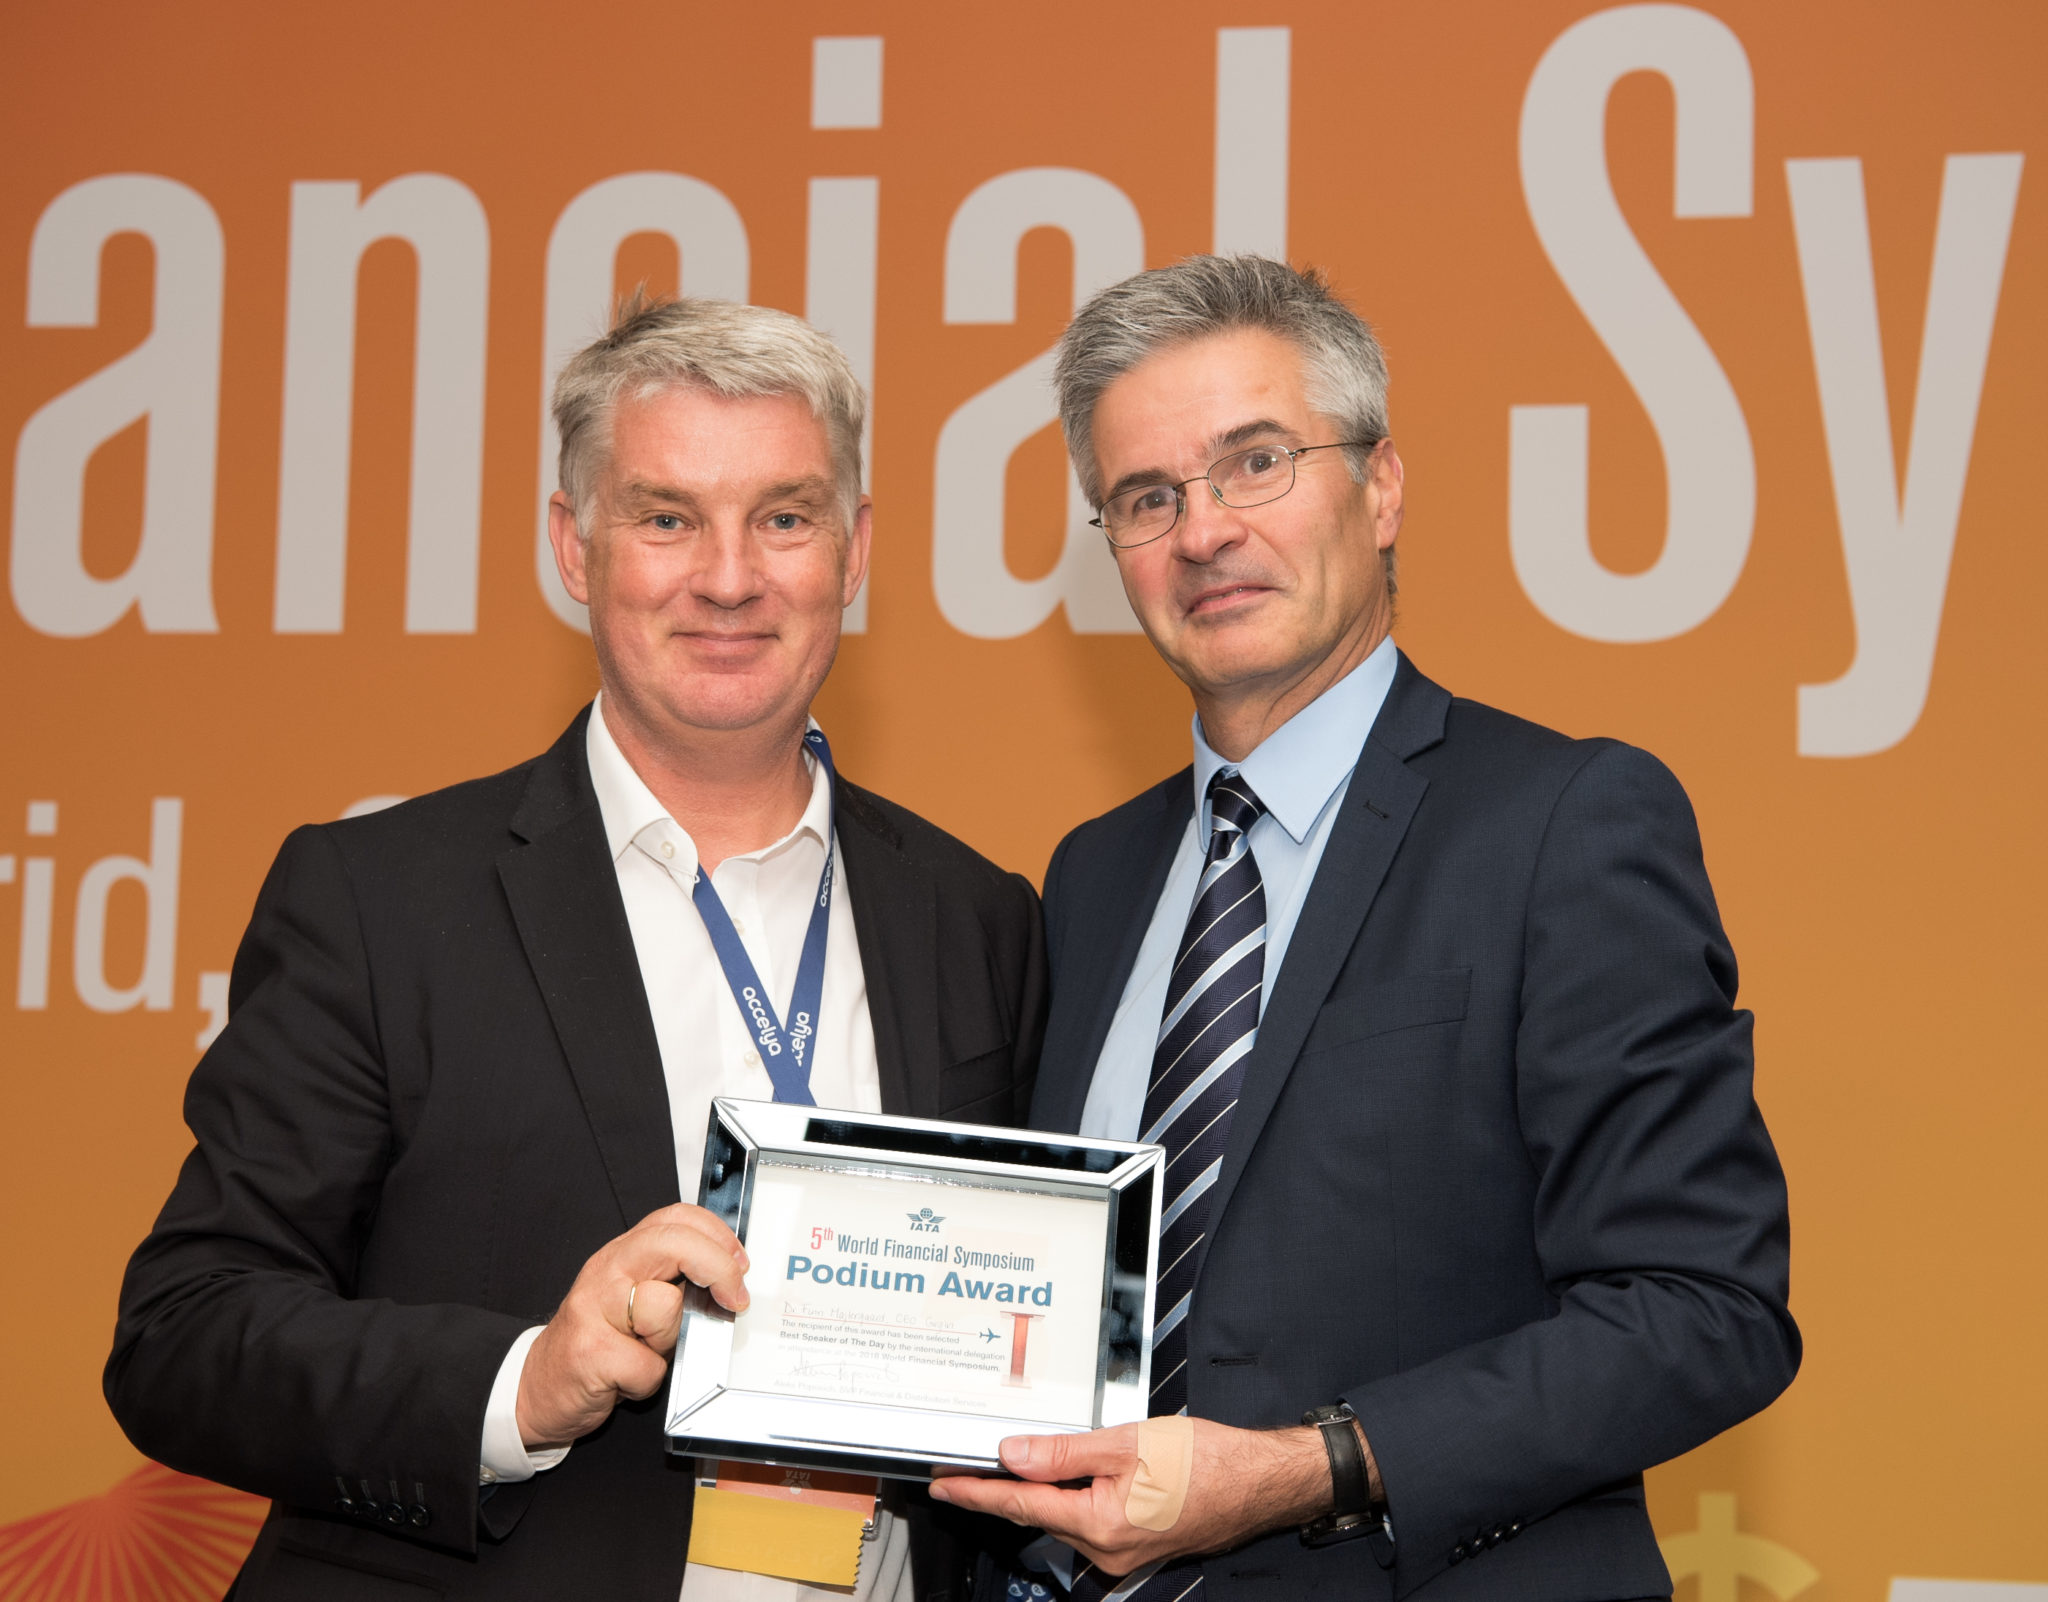 Dr Finn Majlergaard receiving award for his keynote speech on cultural competitive advantage